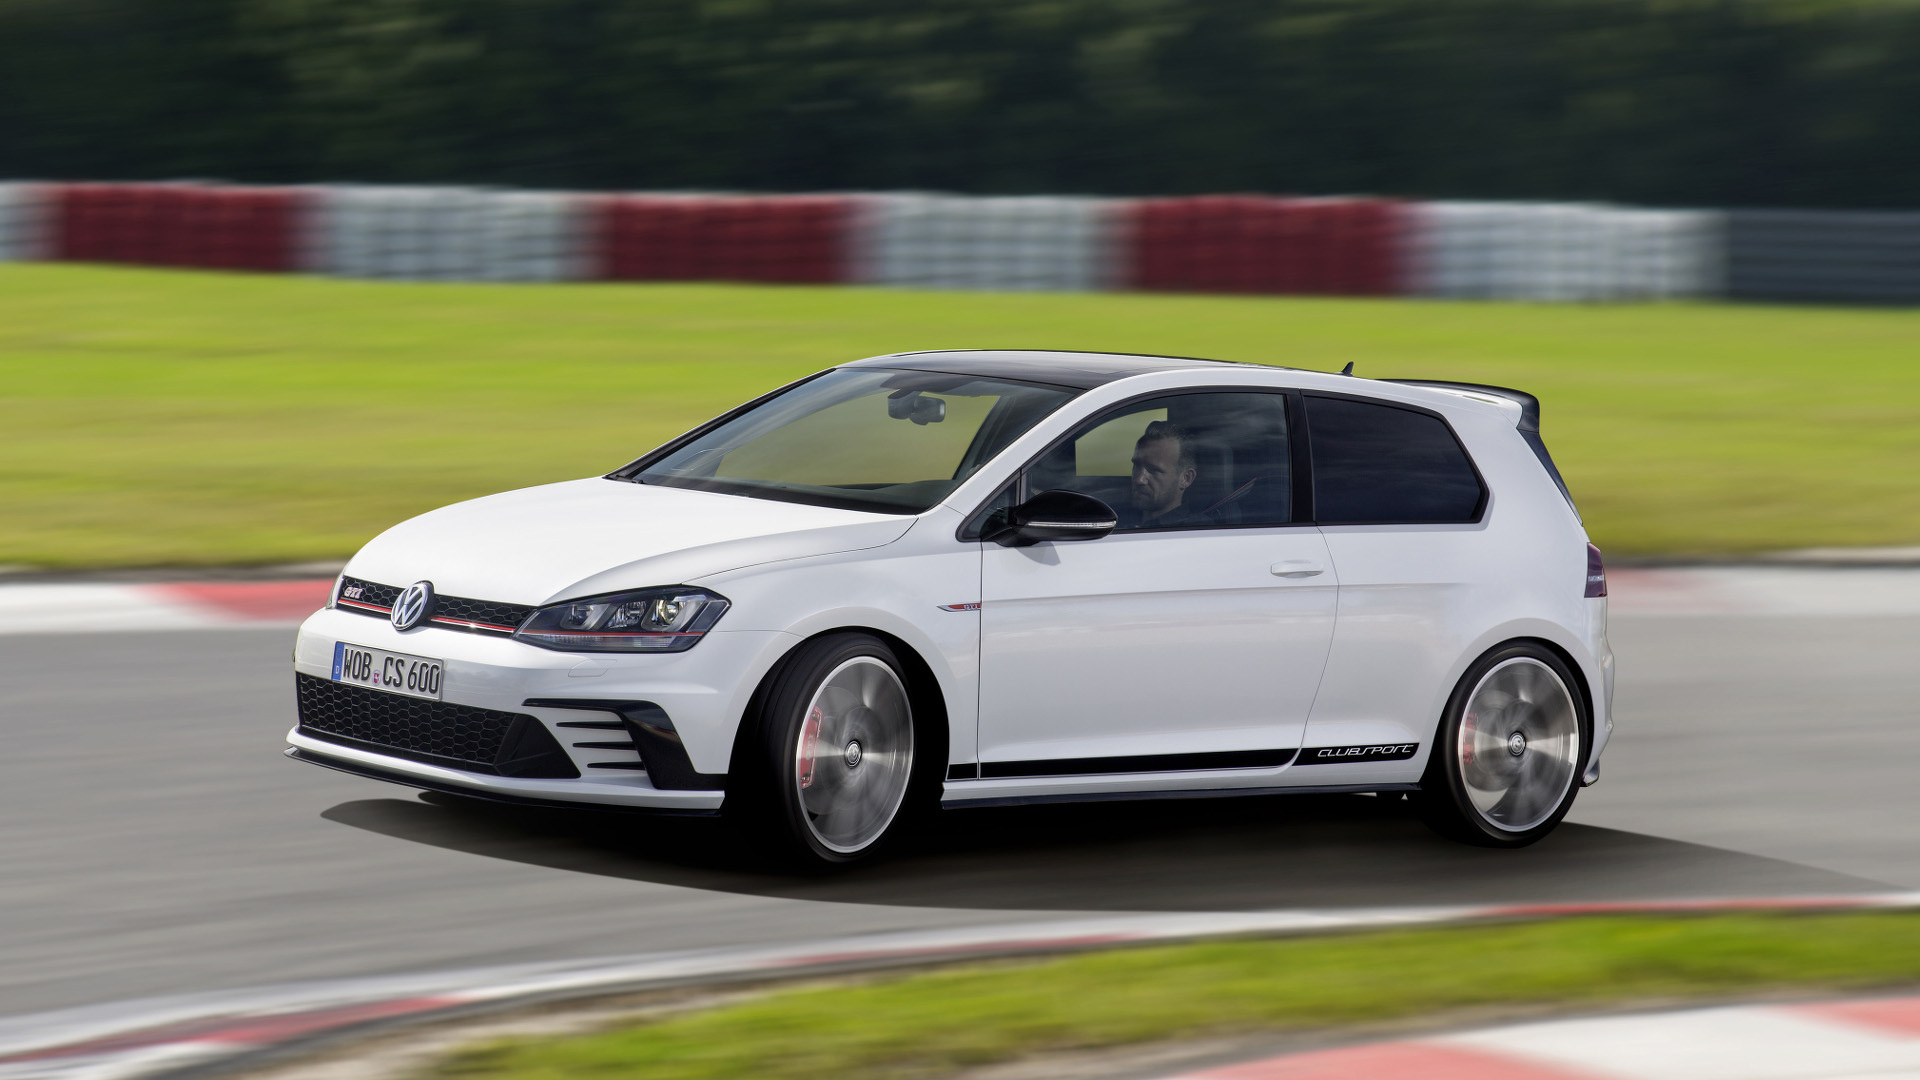 When Can I Order A 2016 Vw Gti | 2017 - 2018 Best Cars Reviews